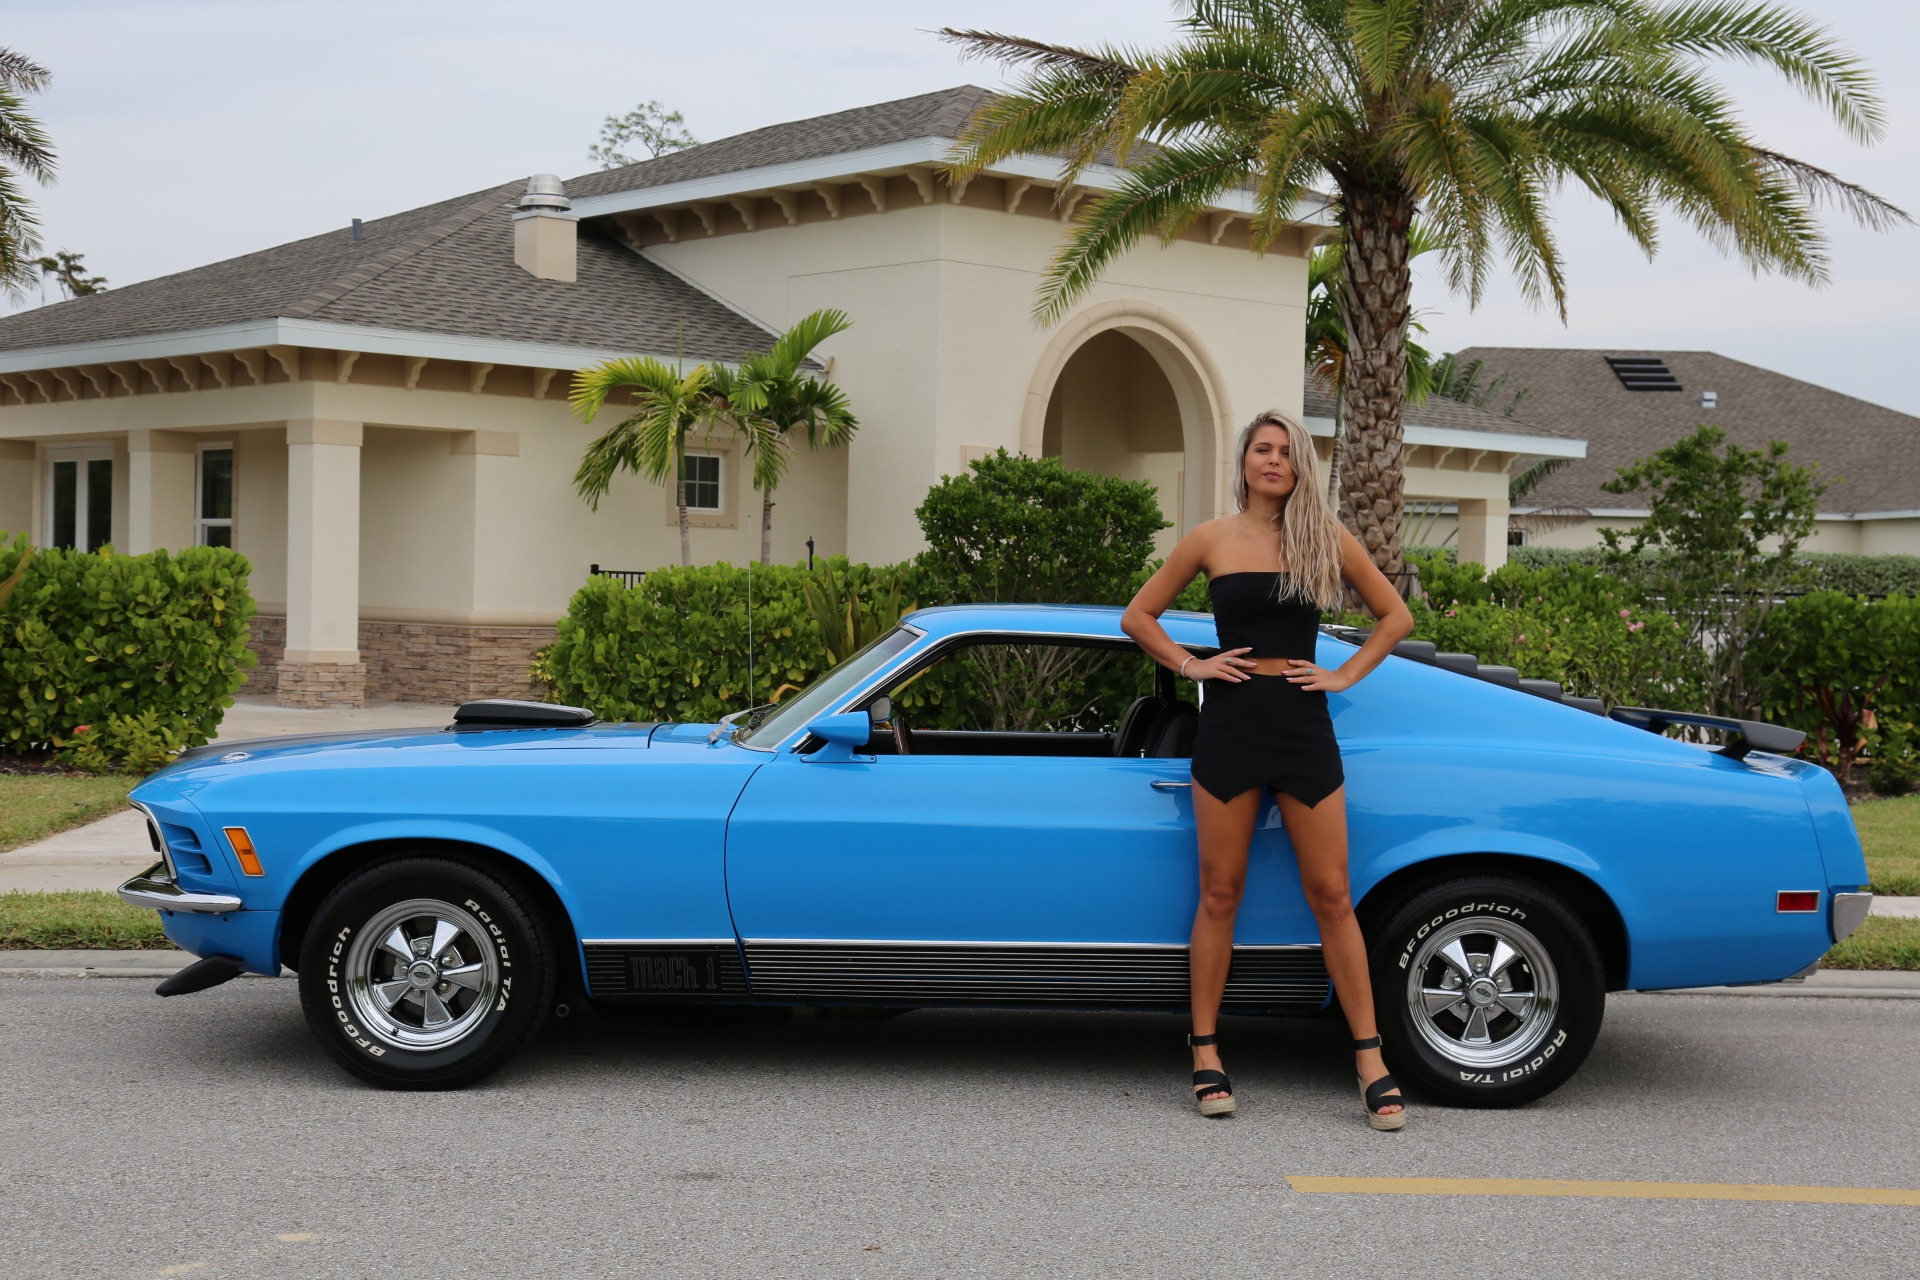 Used 1970 Ford Mustang Mach 1 for sale Sold at Muscle Cars for Sale Inc. in Fort Myers FL 33912 6